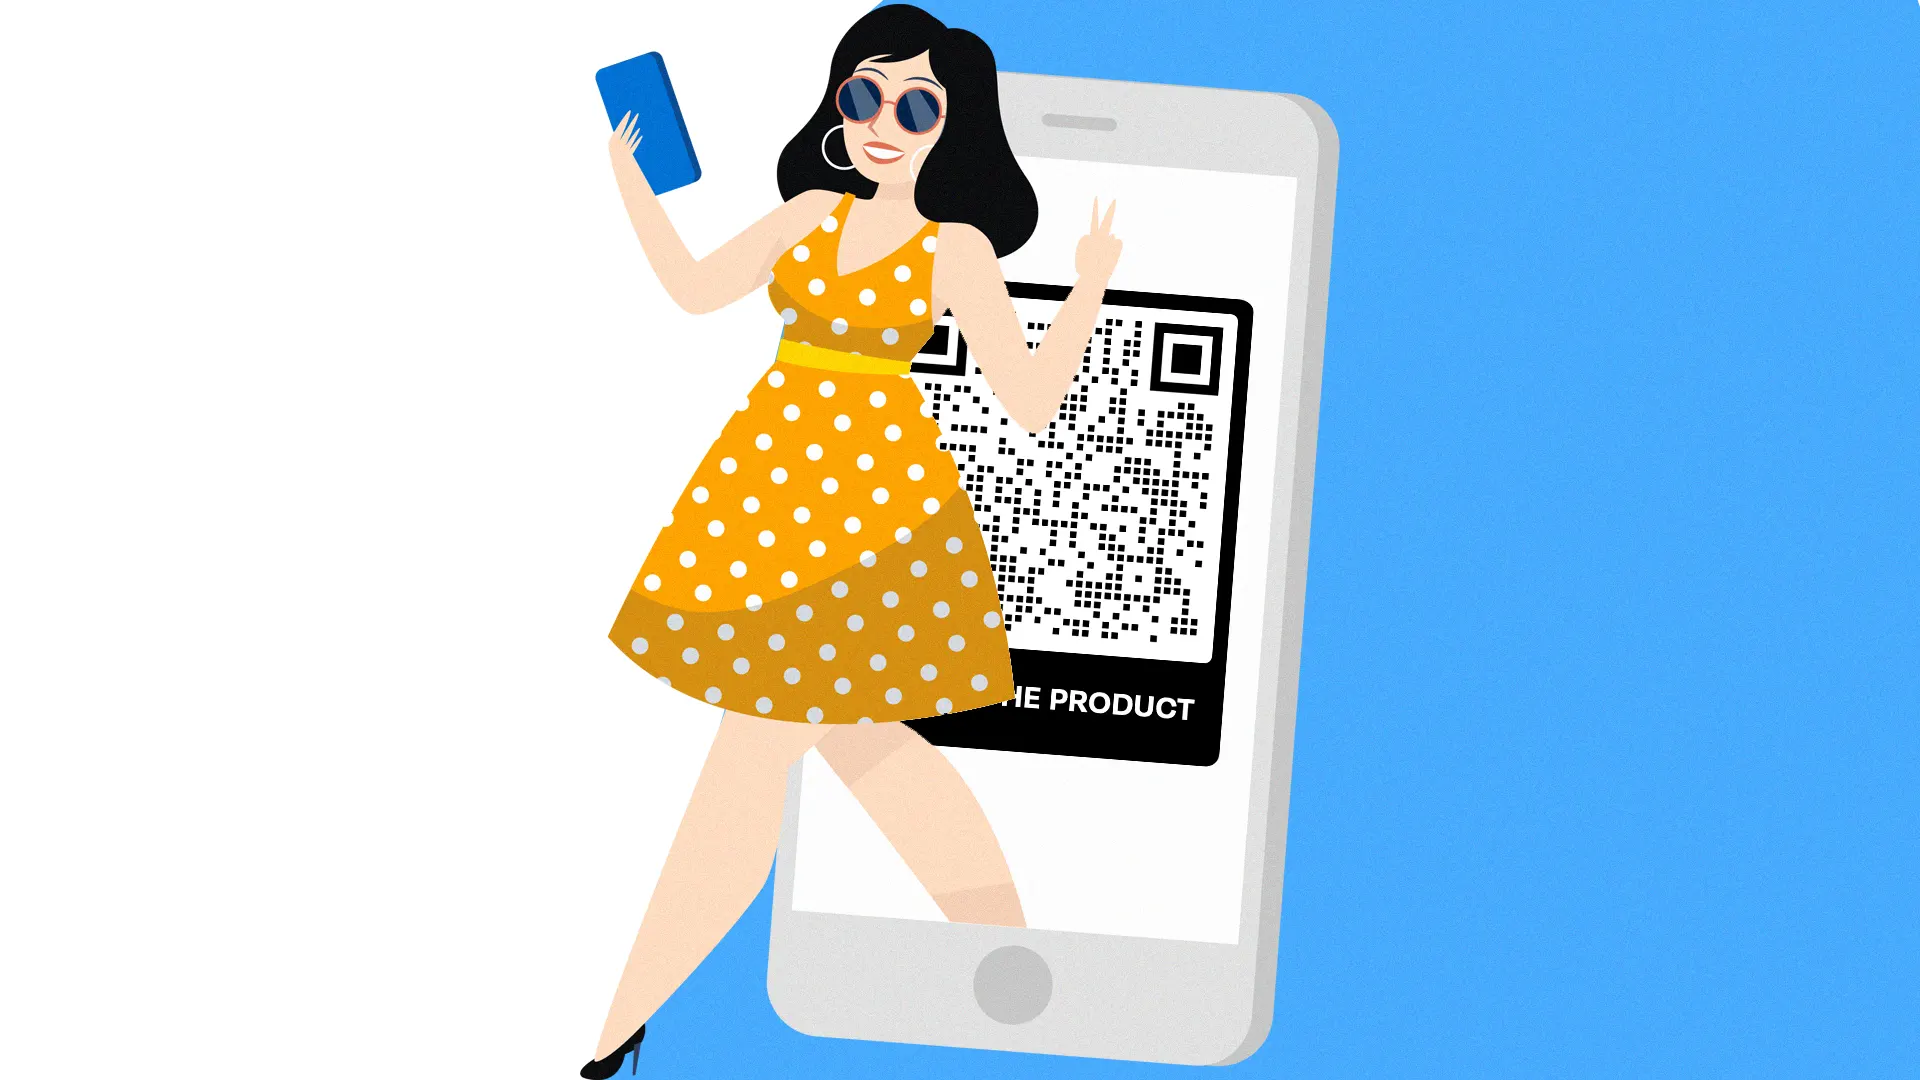 qr codes on product packaging for coverage